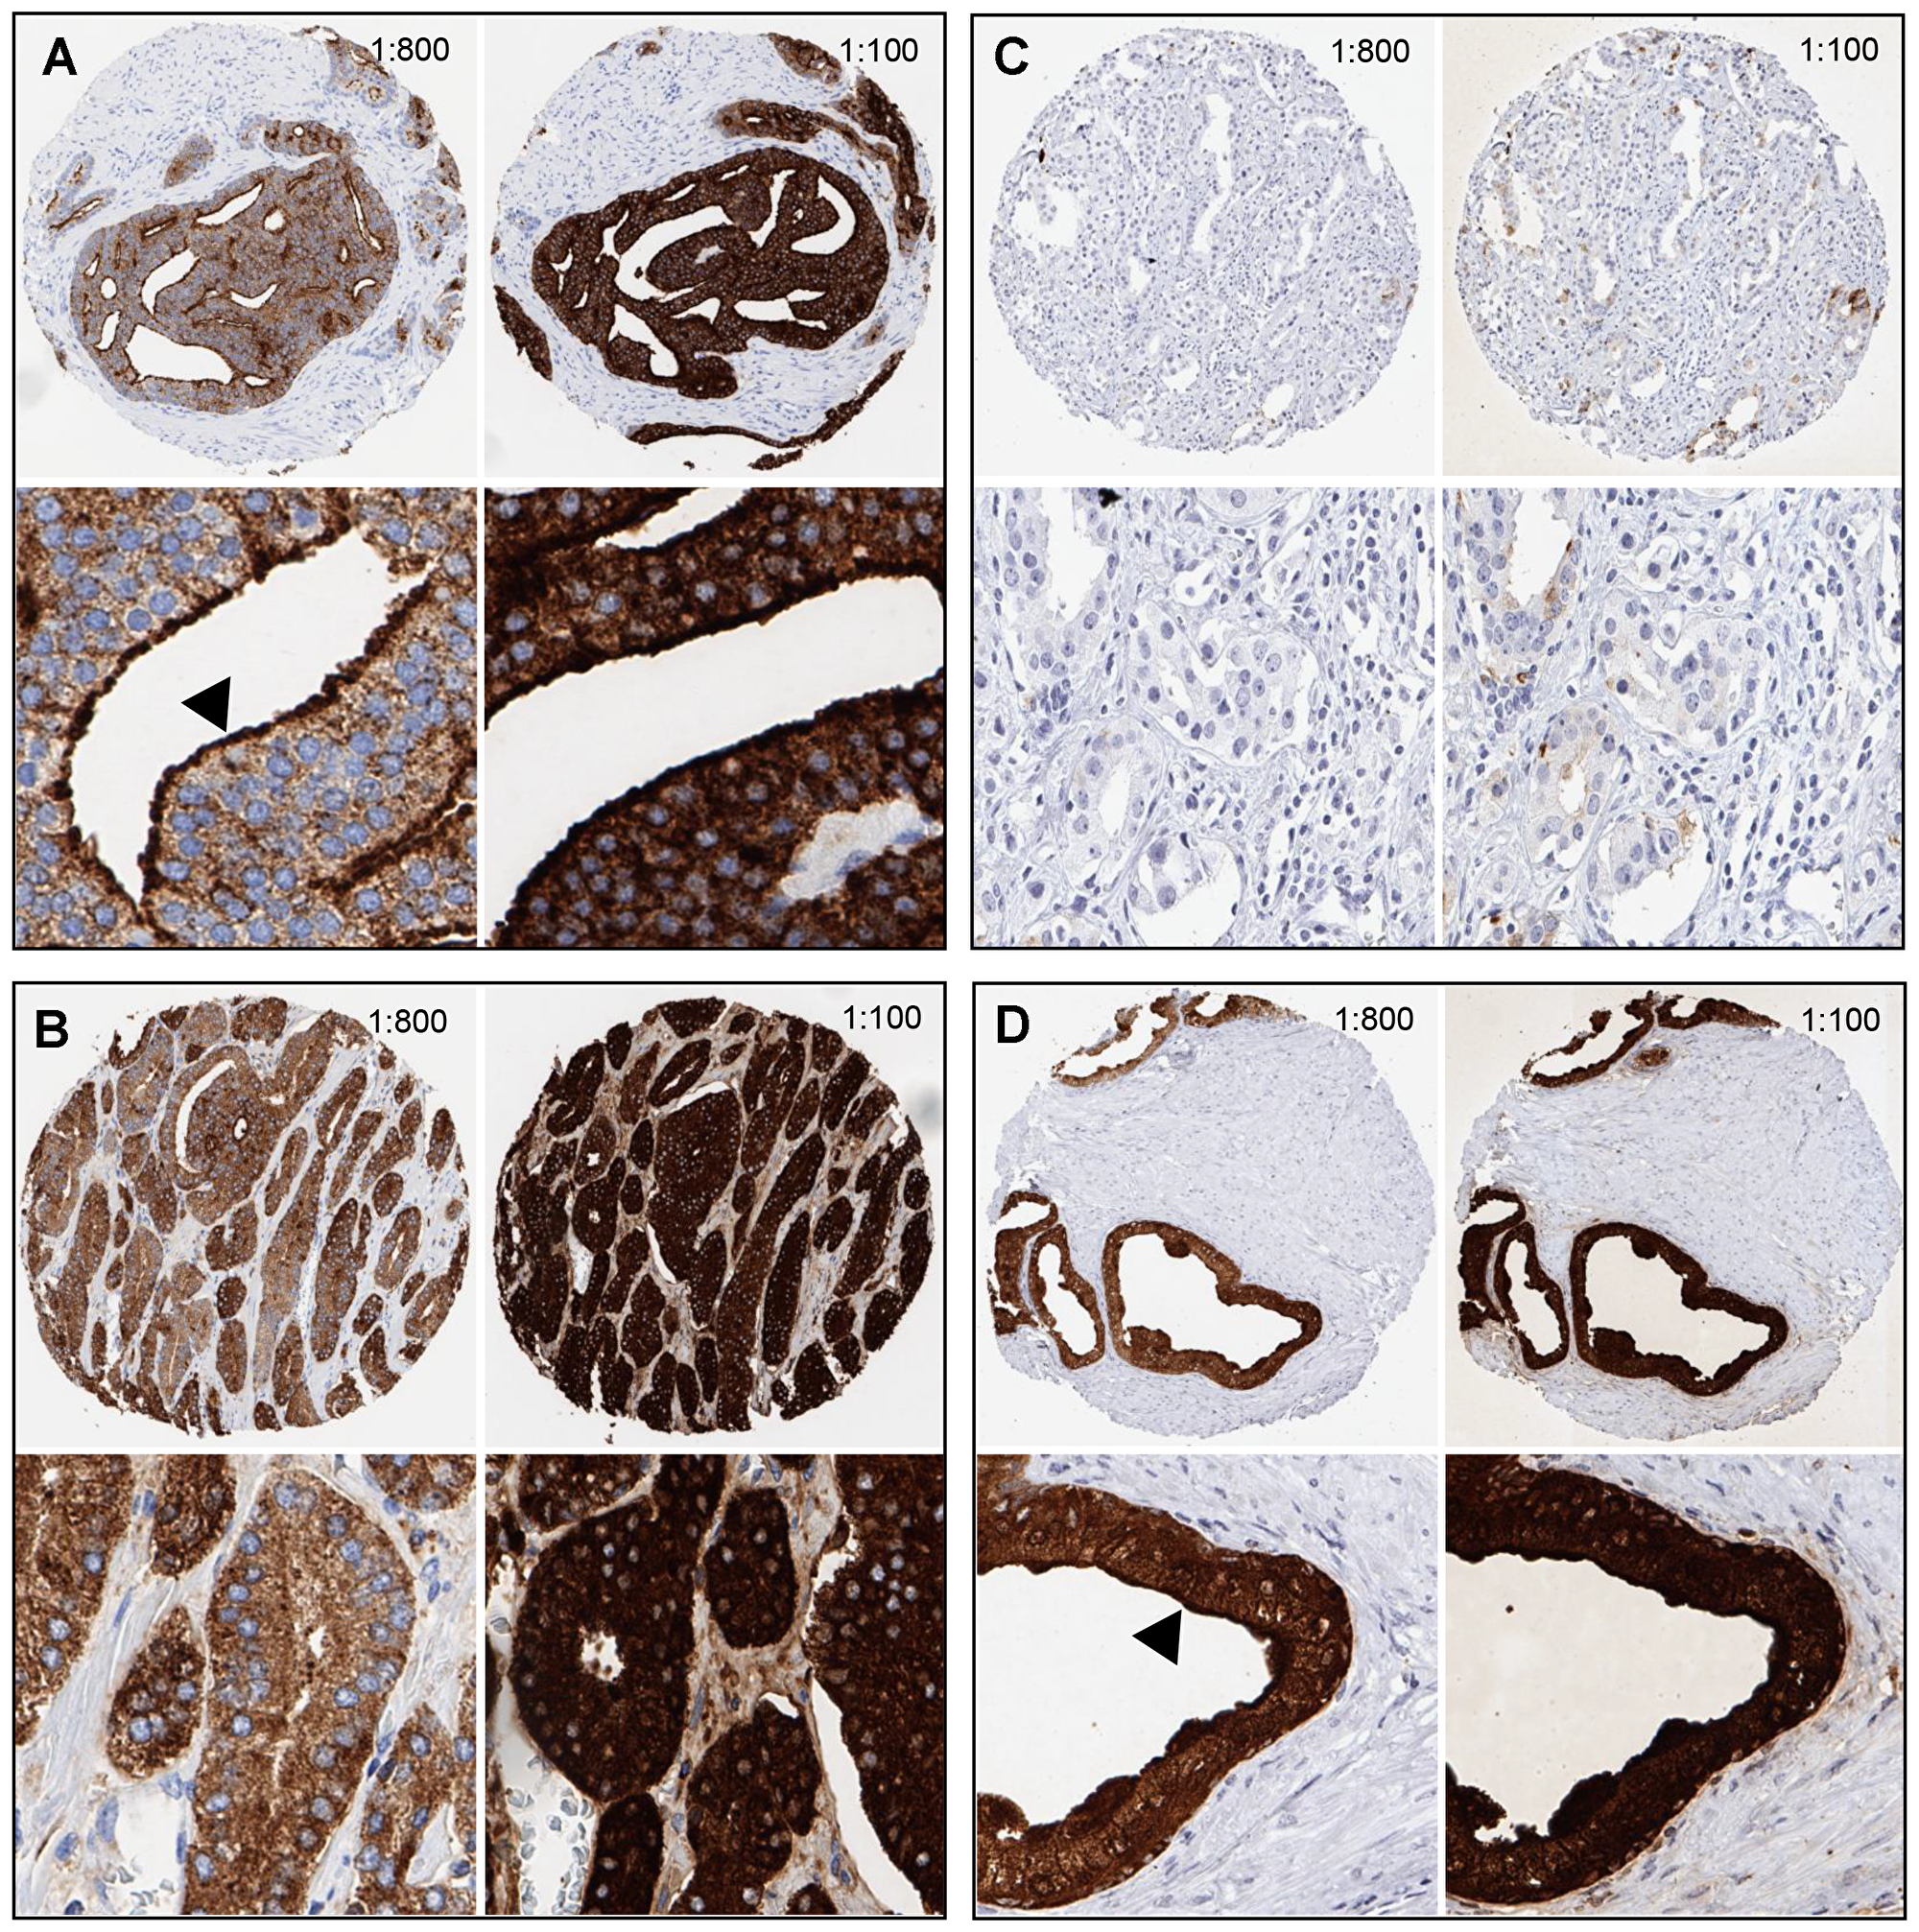 Examples of PSA immunostaining at two different antibody dilutions (1:100, 1:800) in prostate tissues.